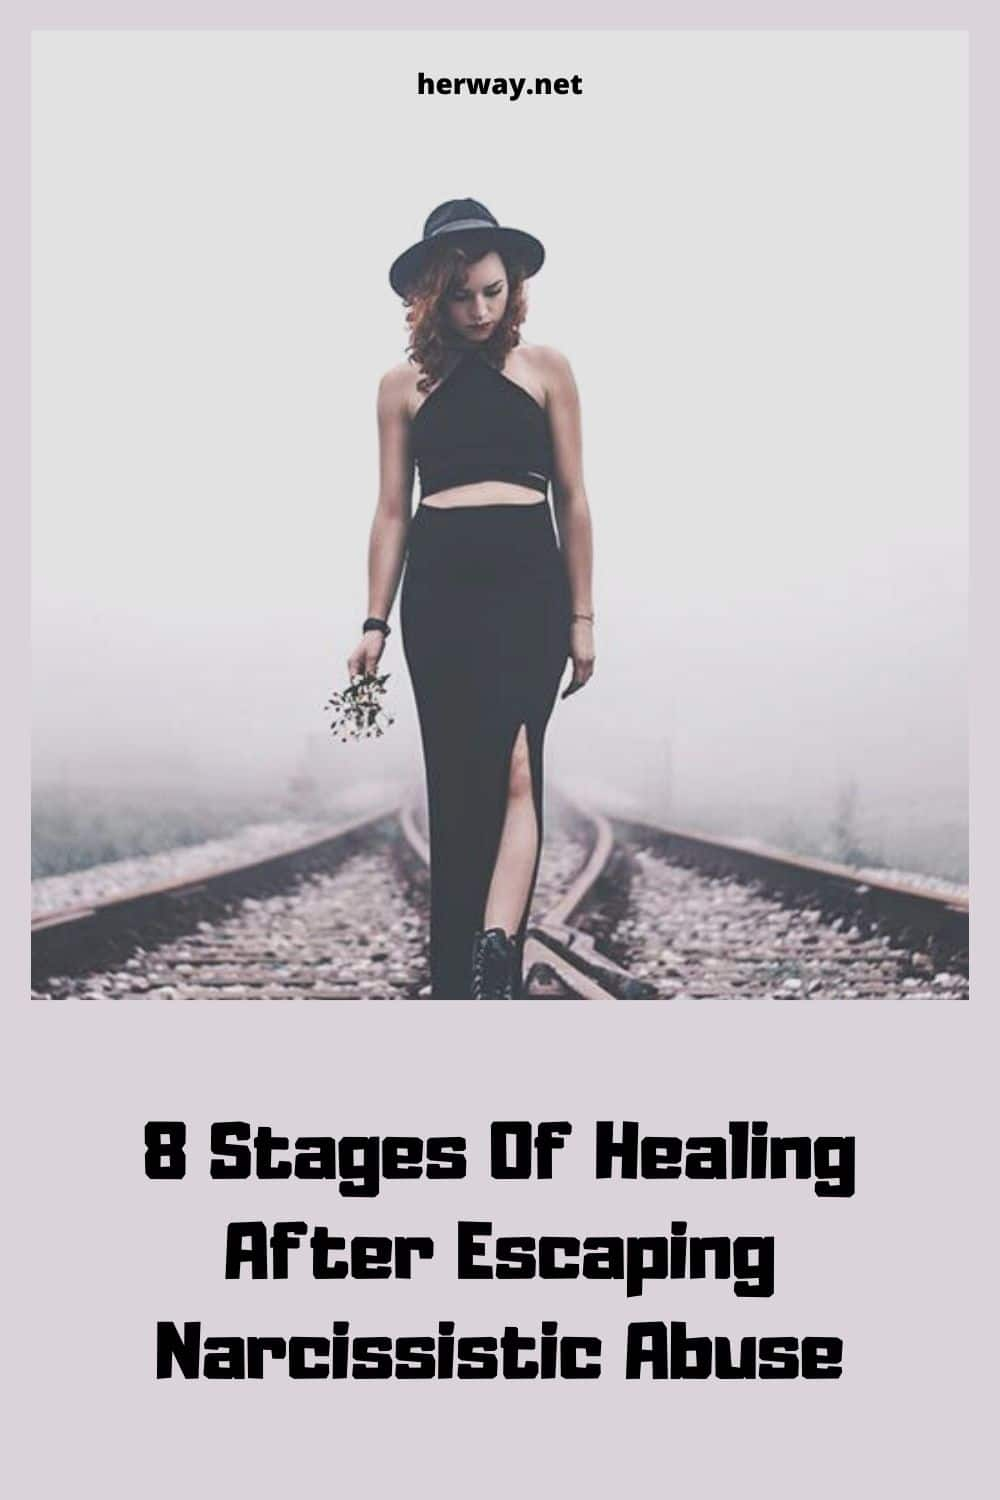 8 Stages Of Healing After Escaping Narcissistic Abuse